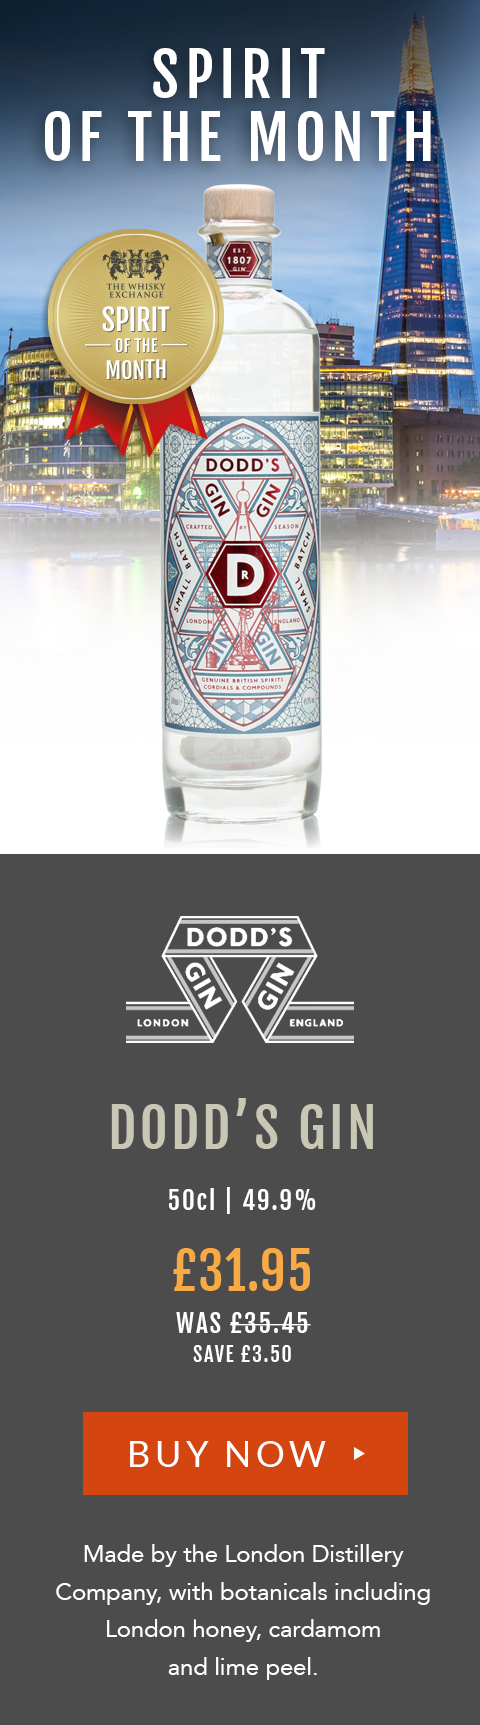 Spirit of the Month [Dodd's Logo] Dodd's GIN 50cl | 49.9% £31.95 (was £35.45) save £3.50 Made by the London Distillery Company, with botanicals including London honey, cardamom and lime peel.